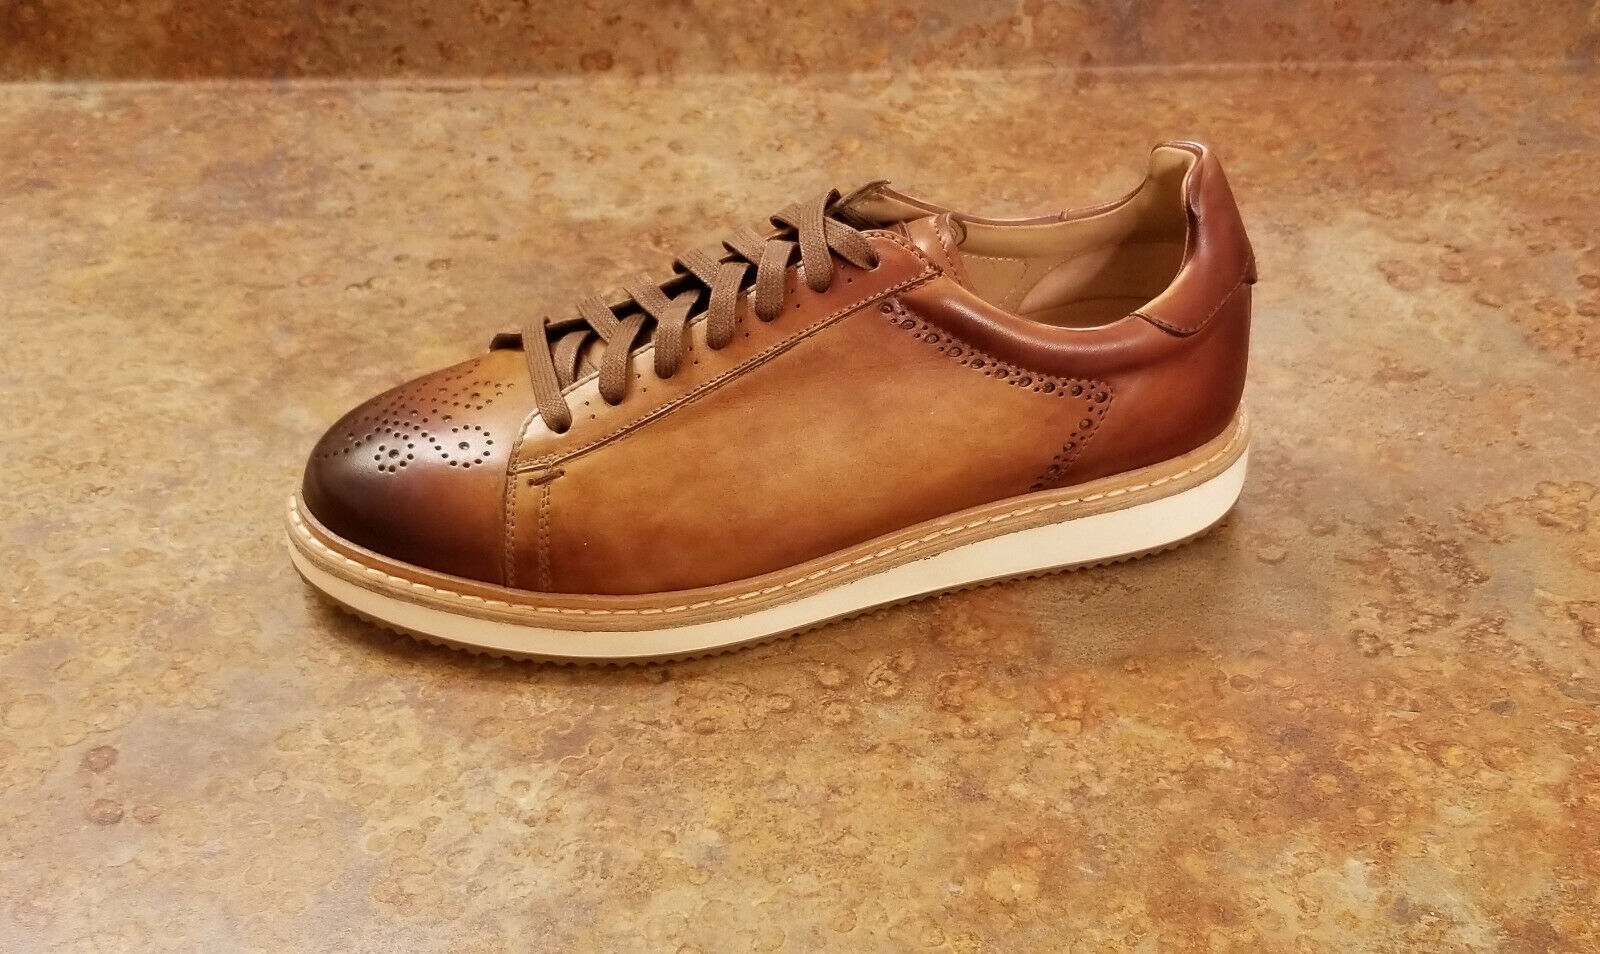 New  Magnanni '21582' Low Top Cognac Brown Leather Sneakers Mens 8 M MSRP  395